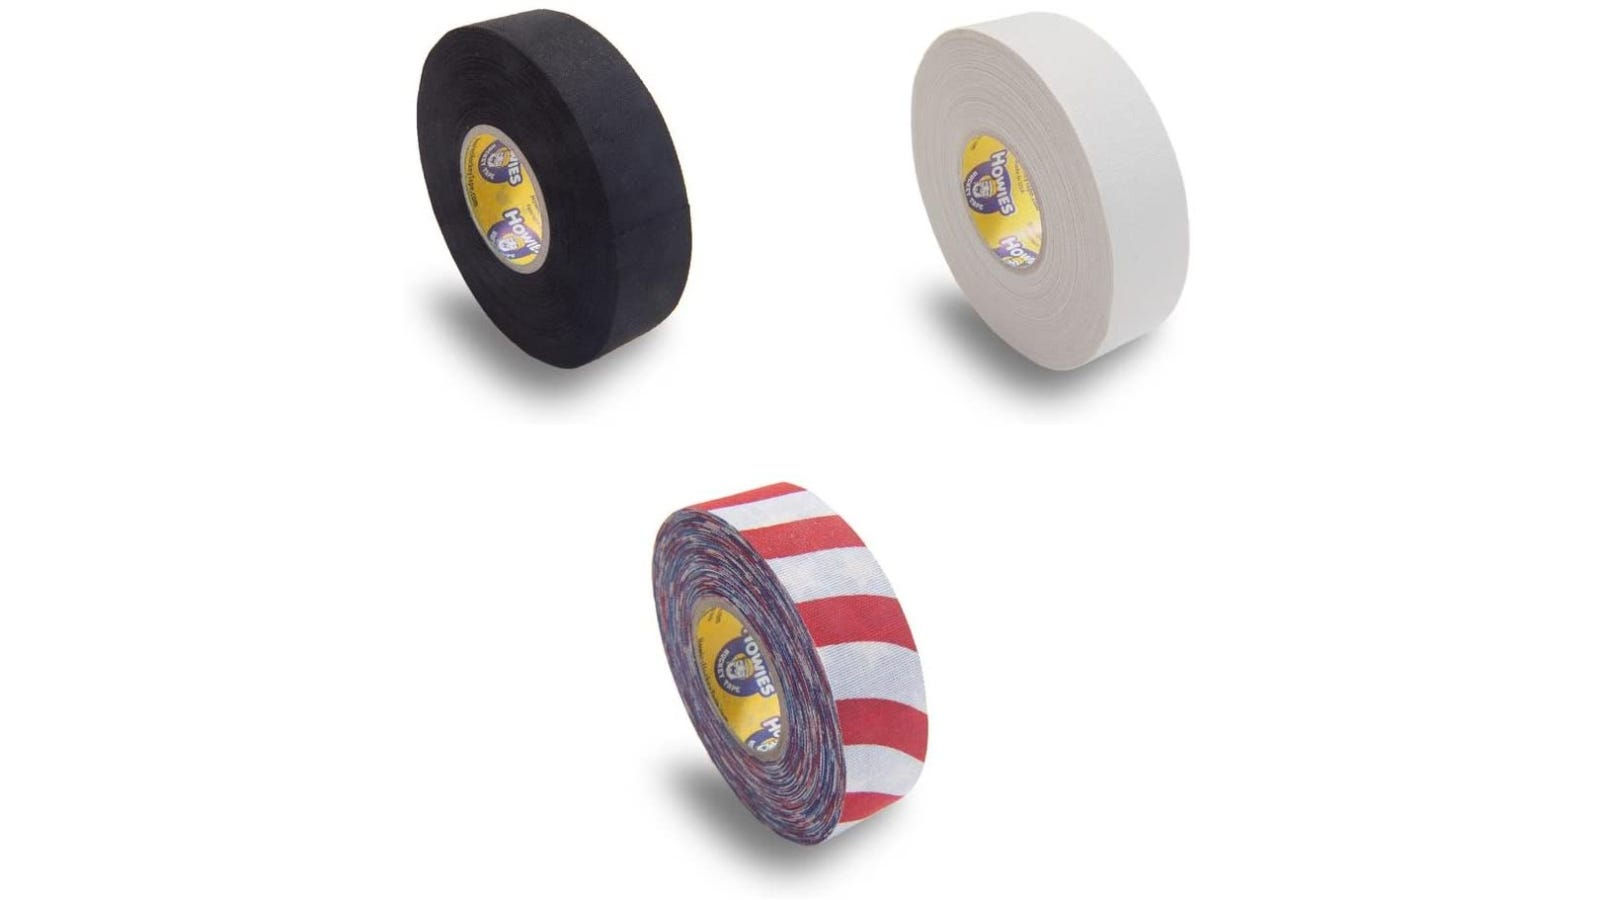 Black, white, and red and white stripped tape rolls against a white background.